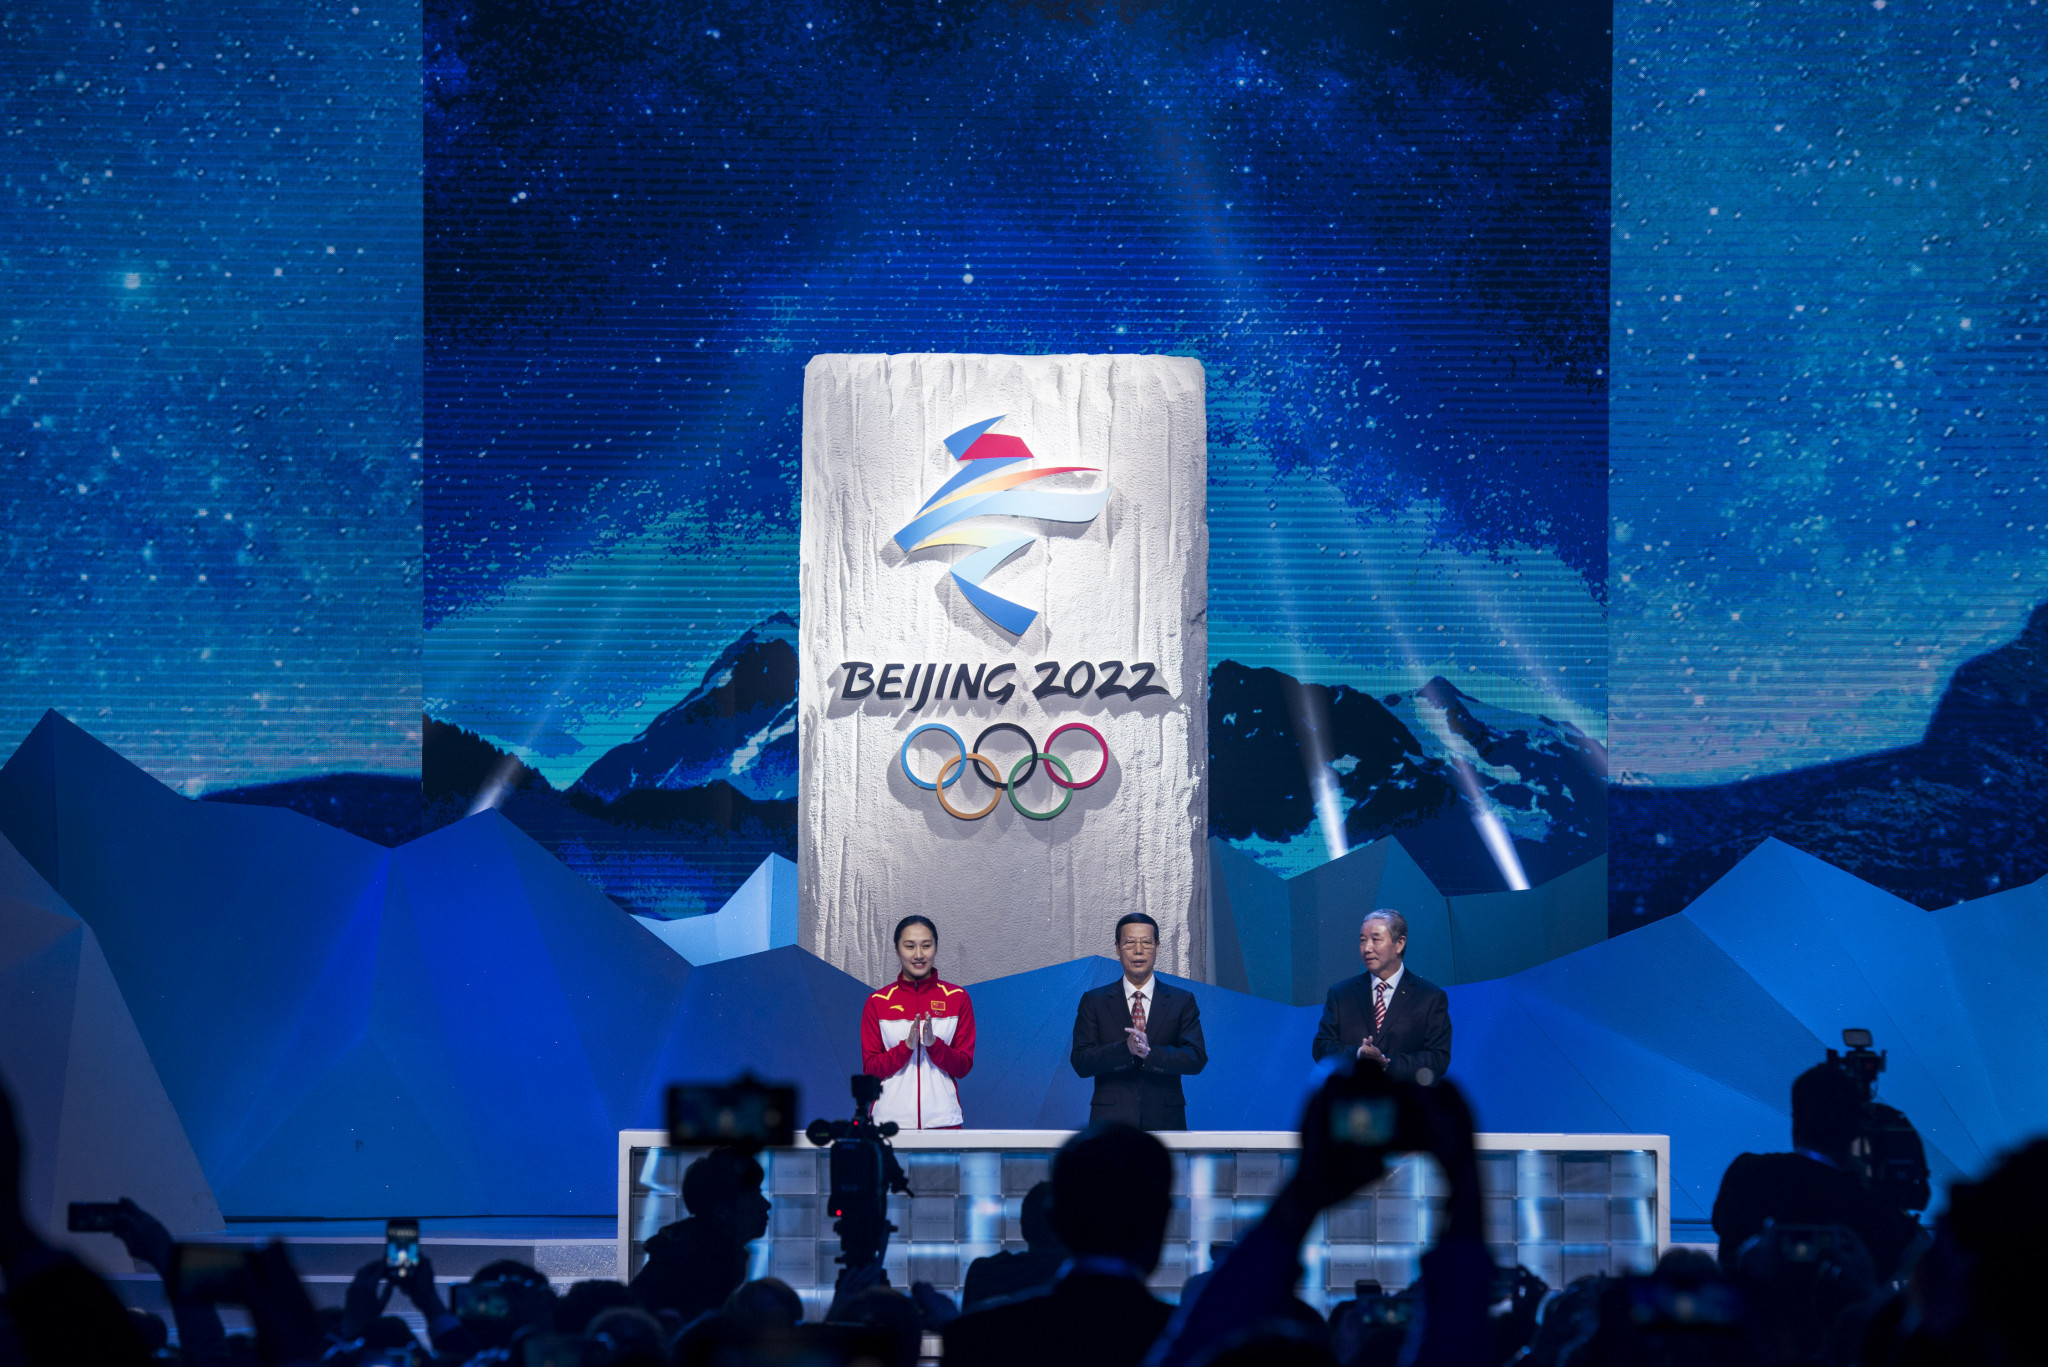 Logos revealed for Beijing 2022 Winter Olympics and Paralympics